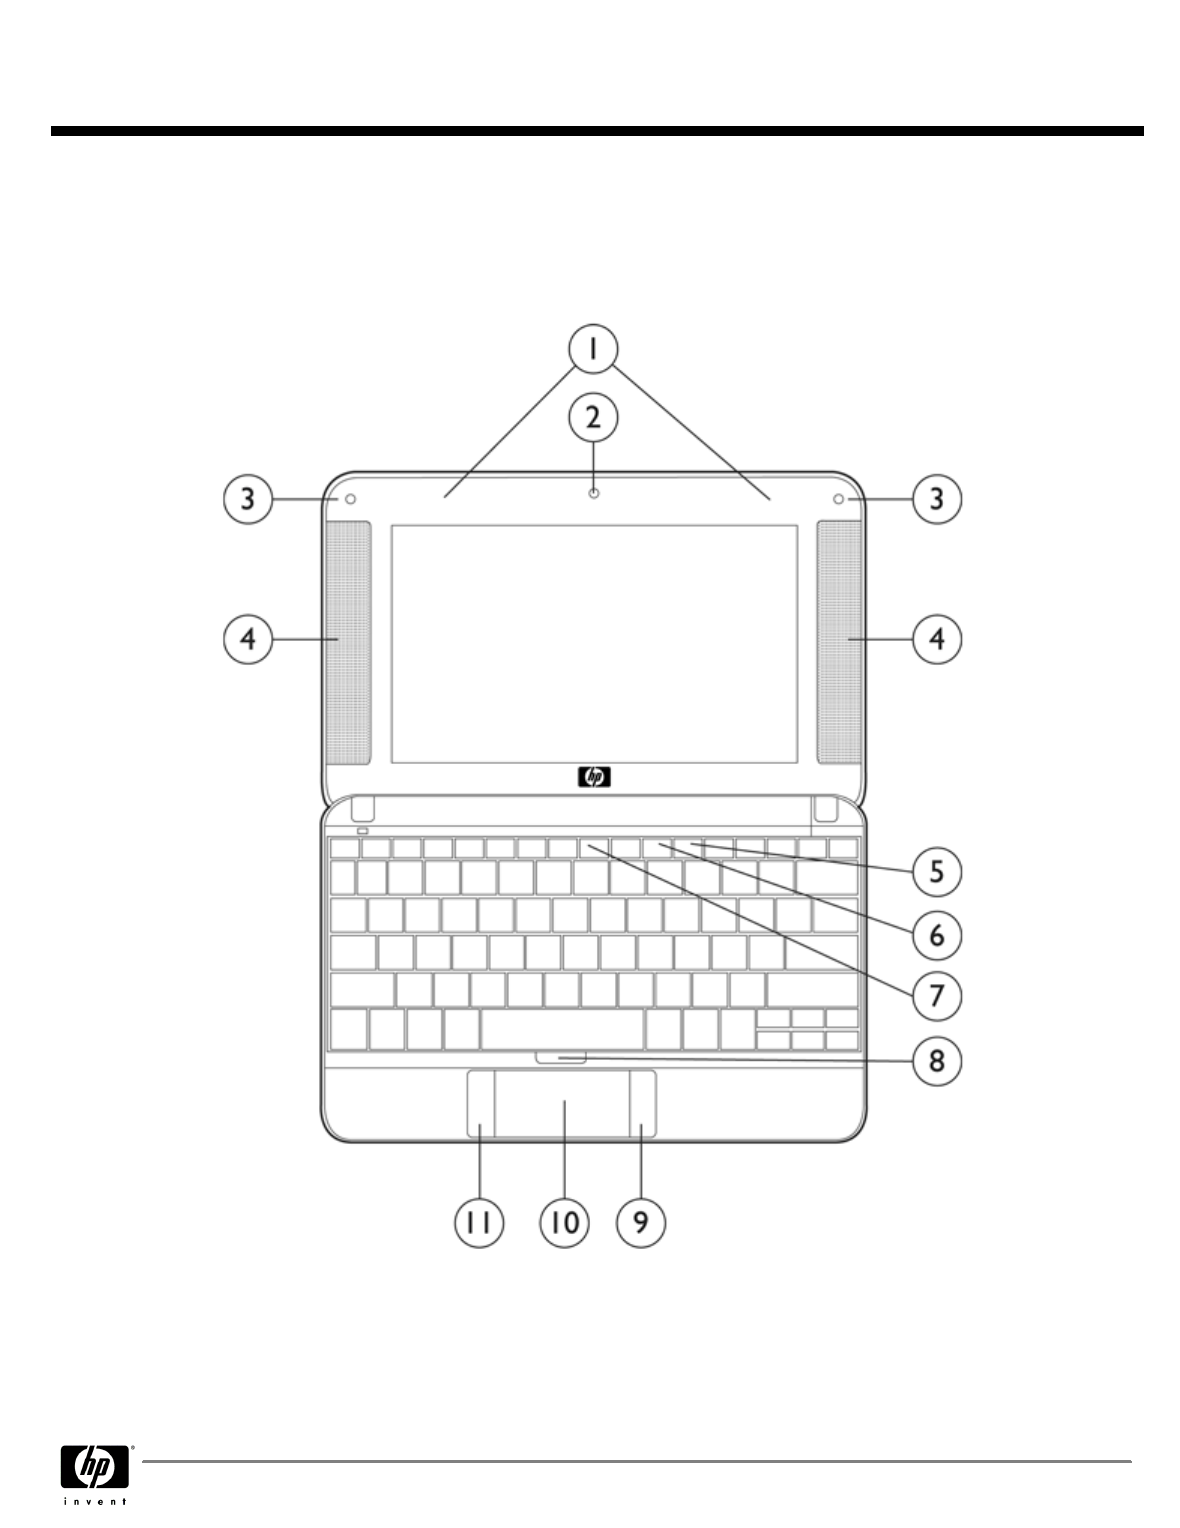 HP (Hewlett-Packard) Laptop 2133 User Guide